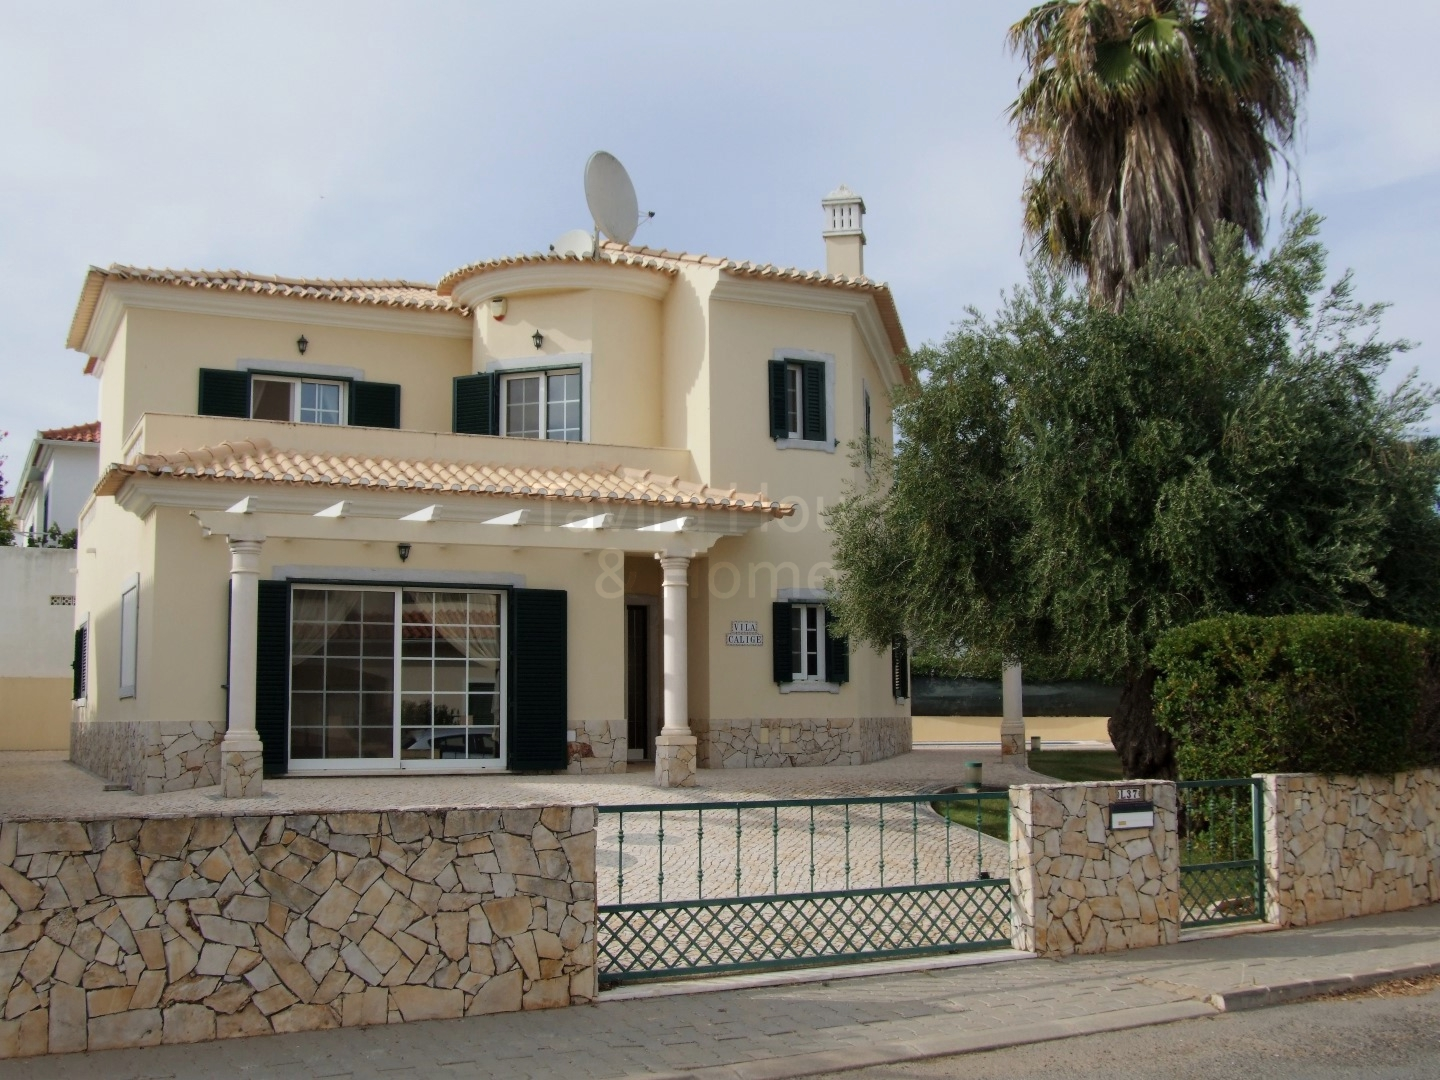 A0556 - 4 Bedroom Villa With Pool  Altura  Castro Marim  Portugal